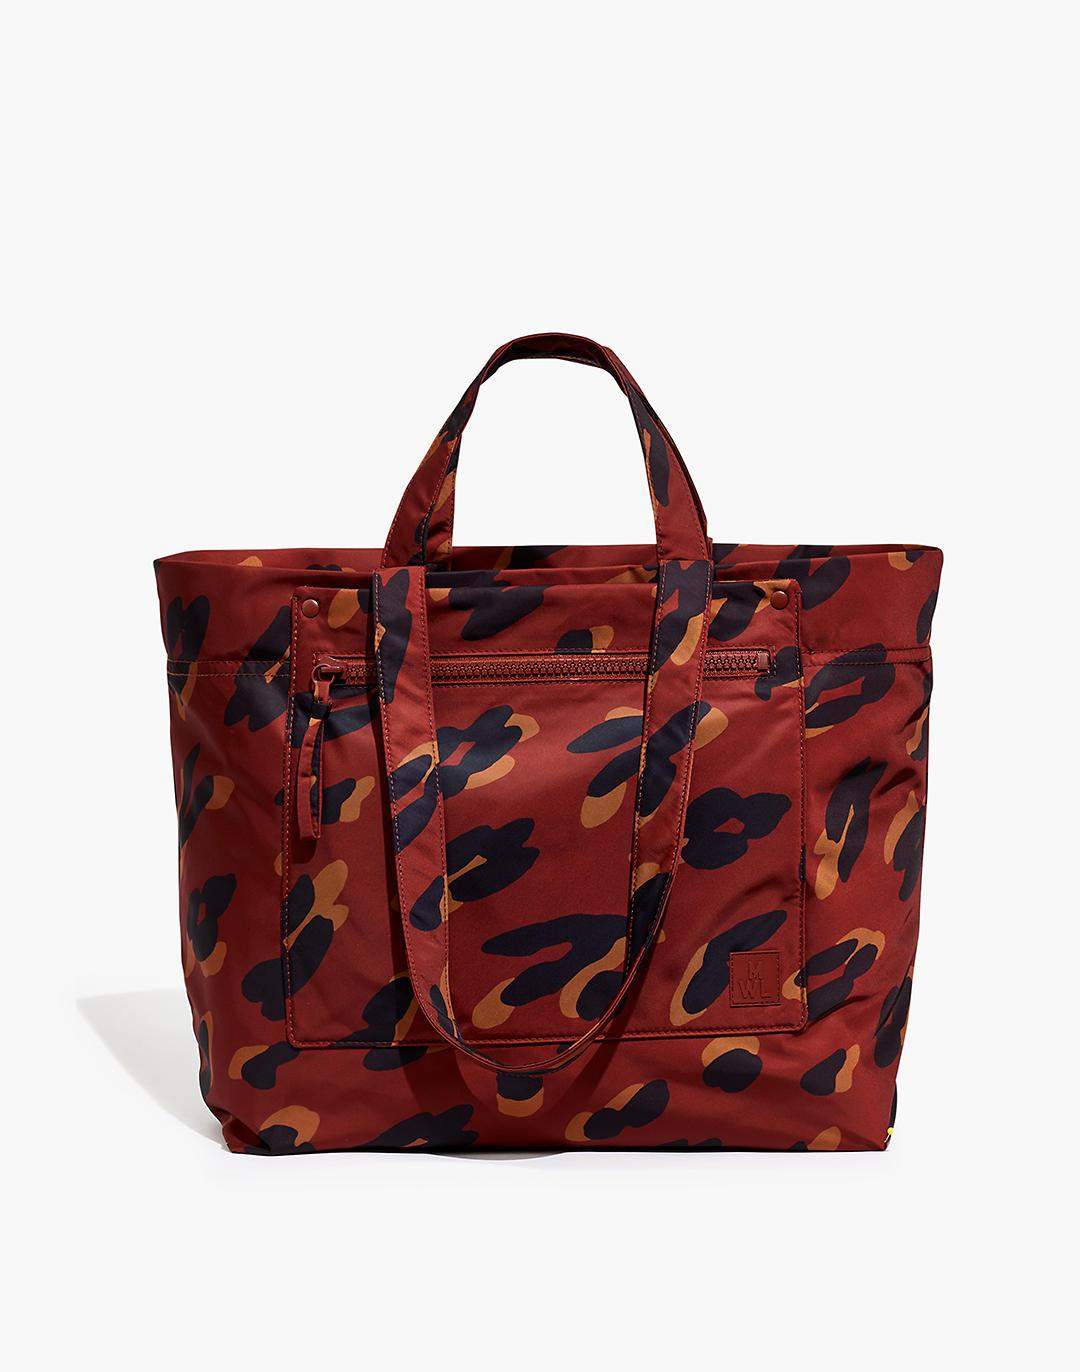 The (Re)sourced Tote Bag in Painted Leopard